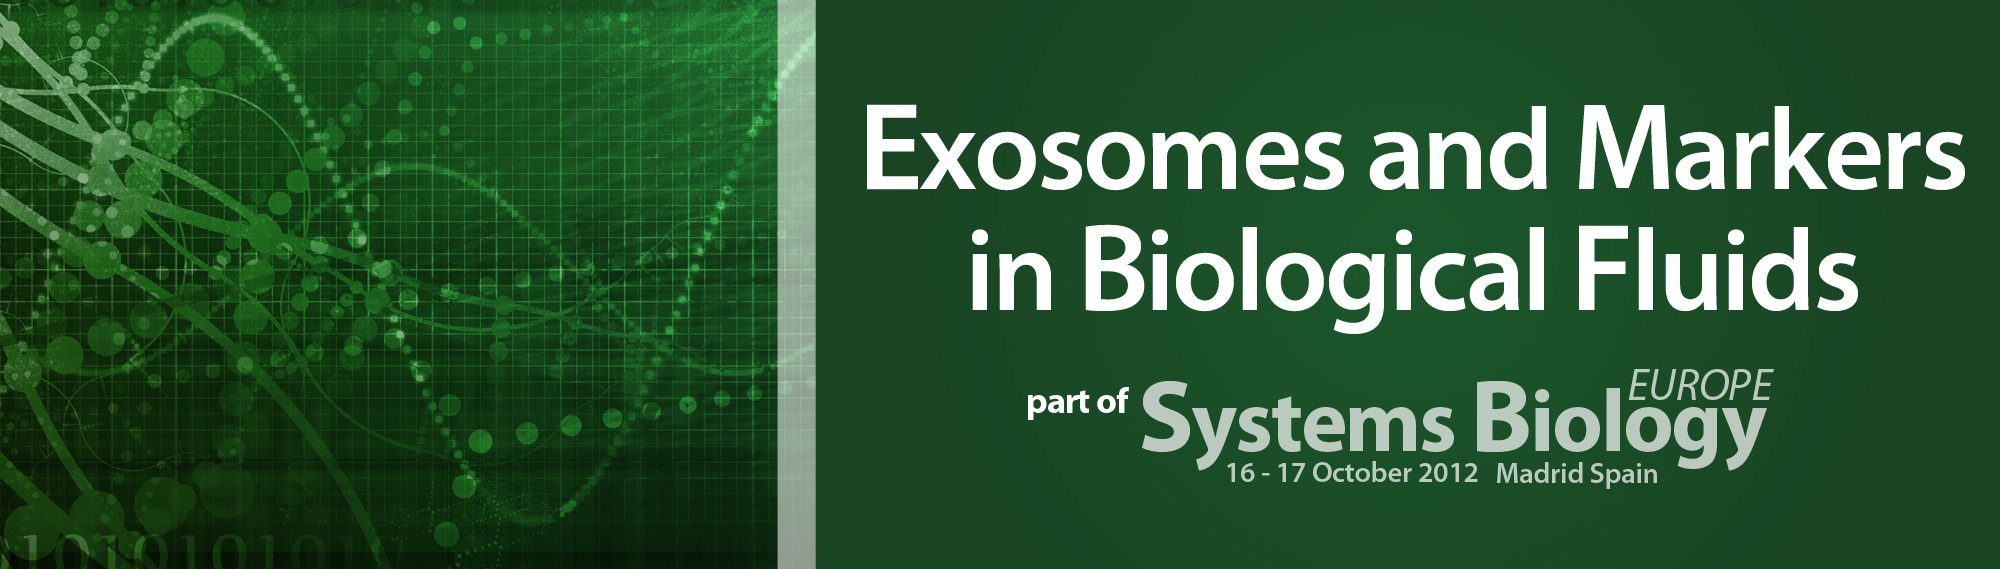 Exosomes and Markers in Biological Fluids